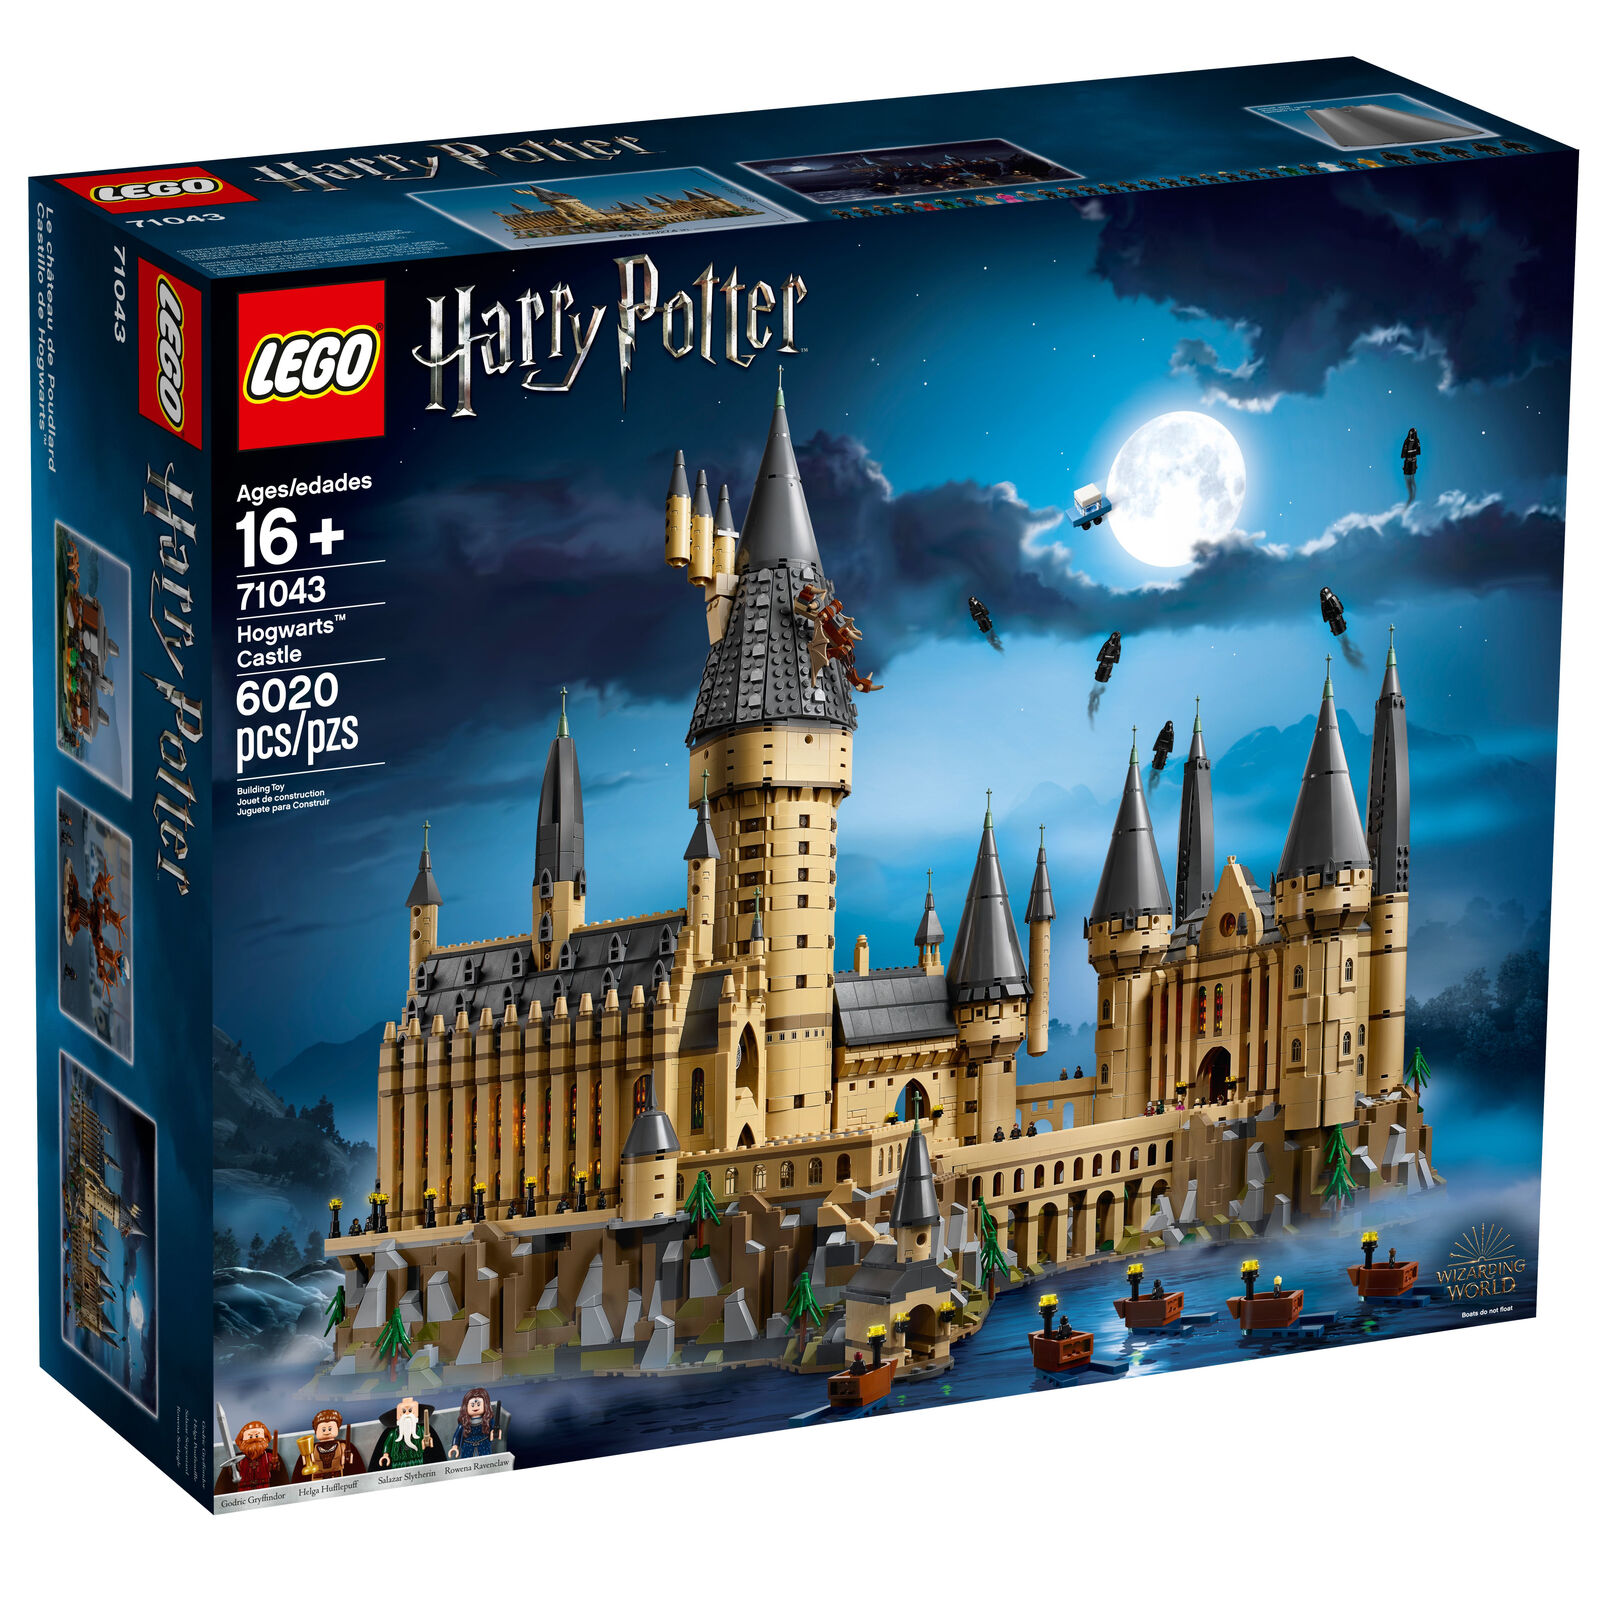 Lego Harry Potter Hogwarts Castillo Set (71043)